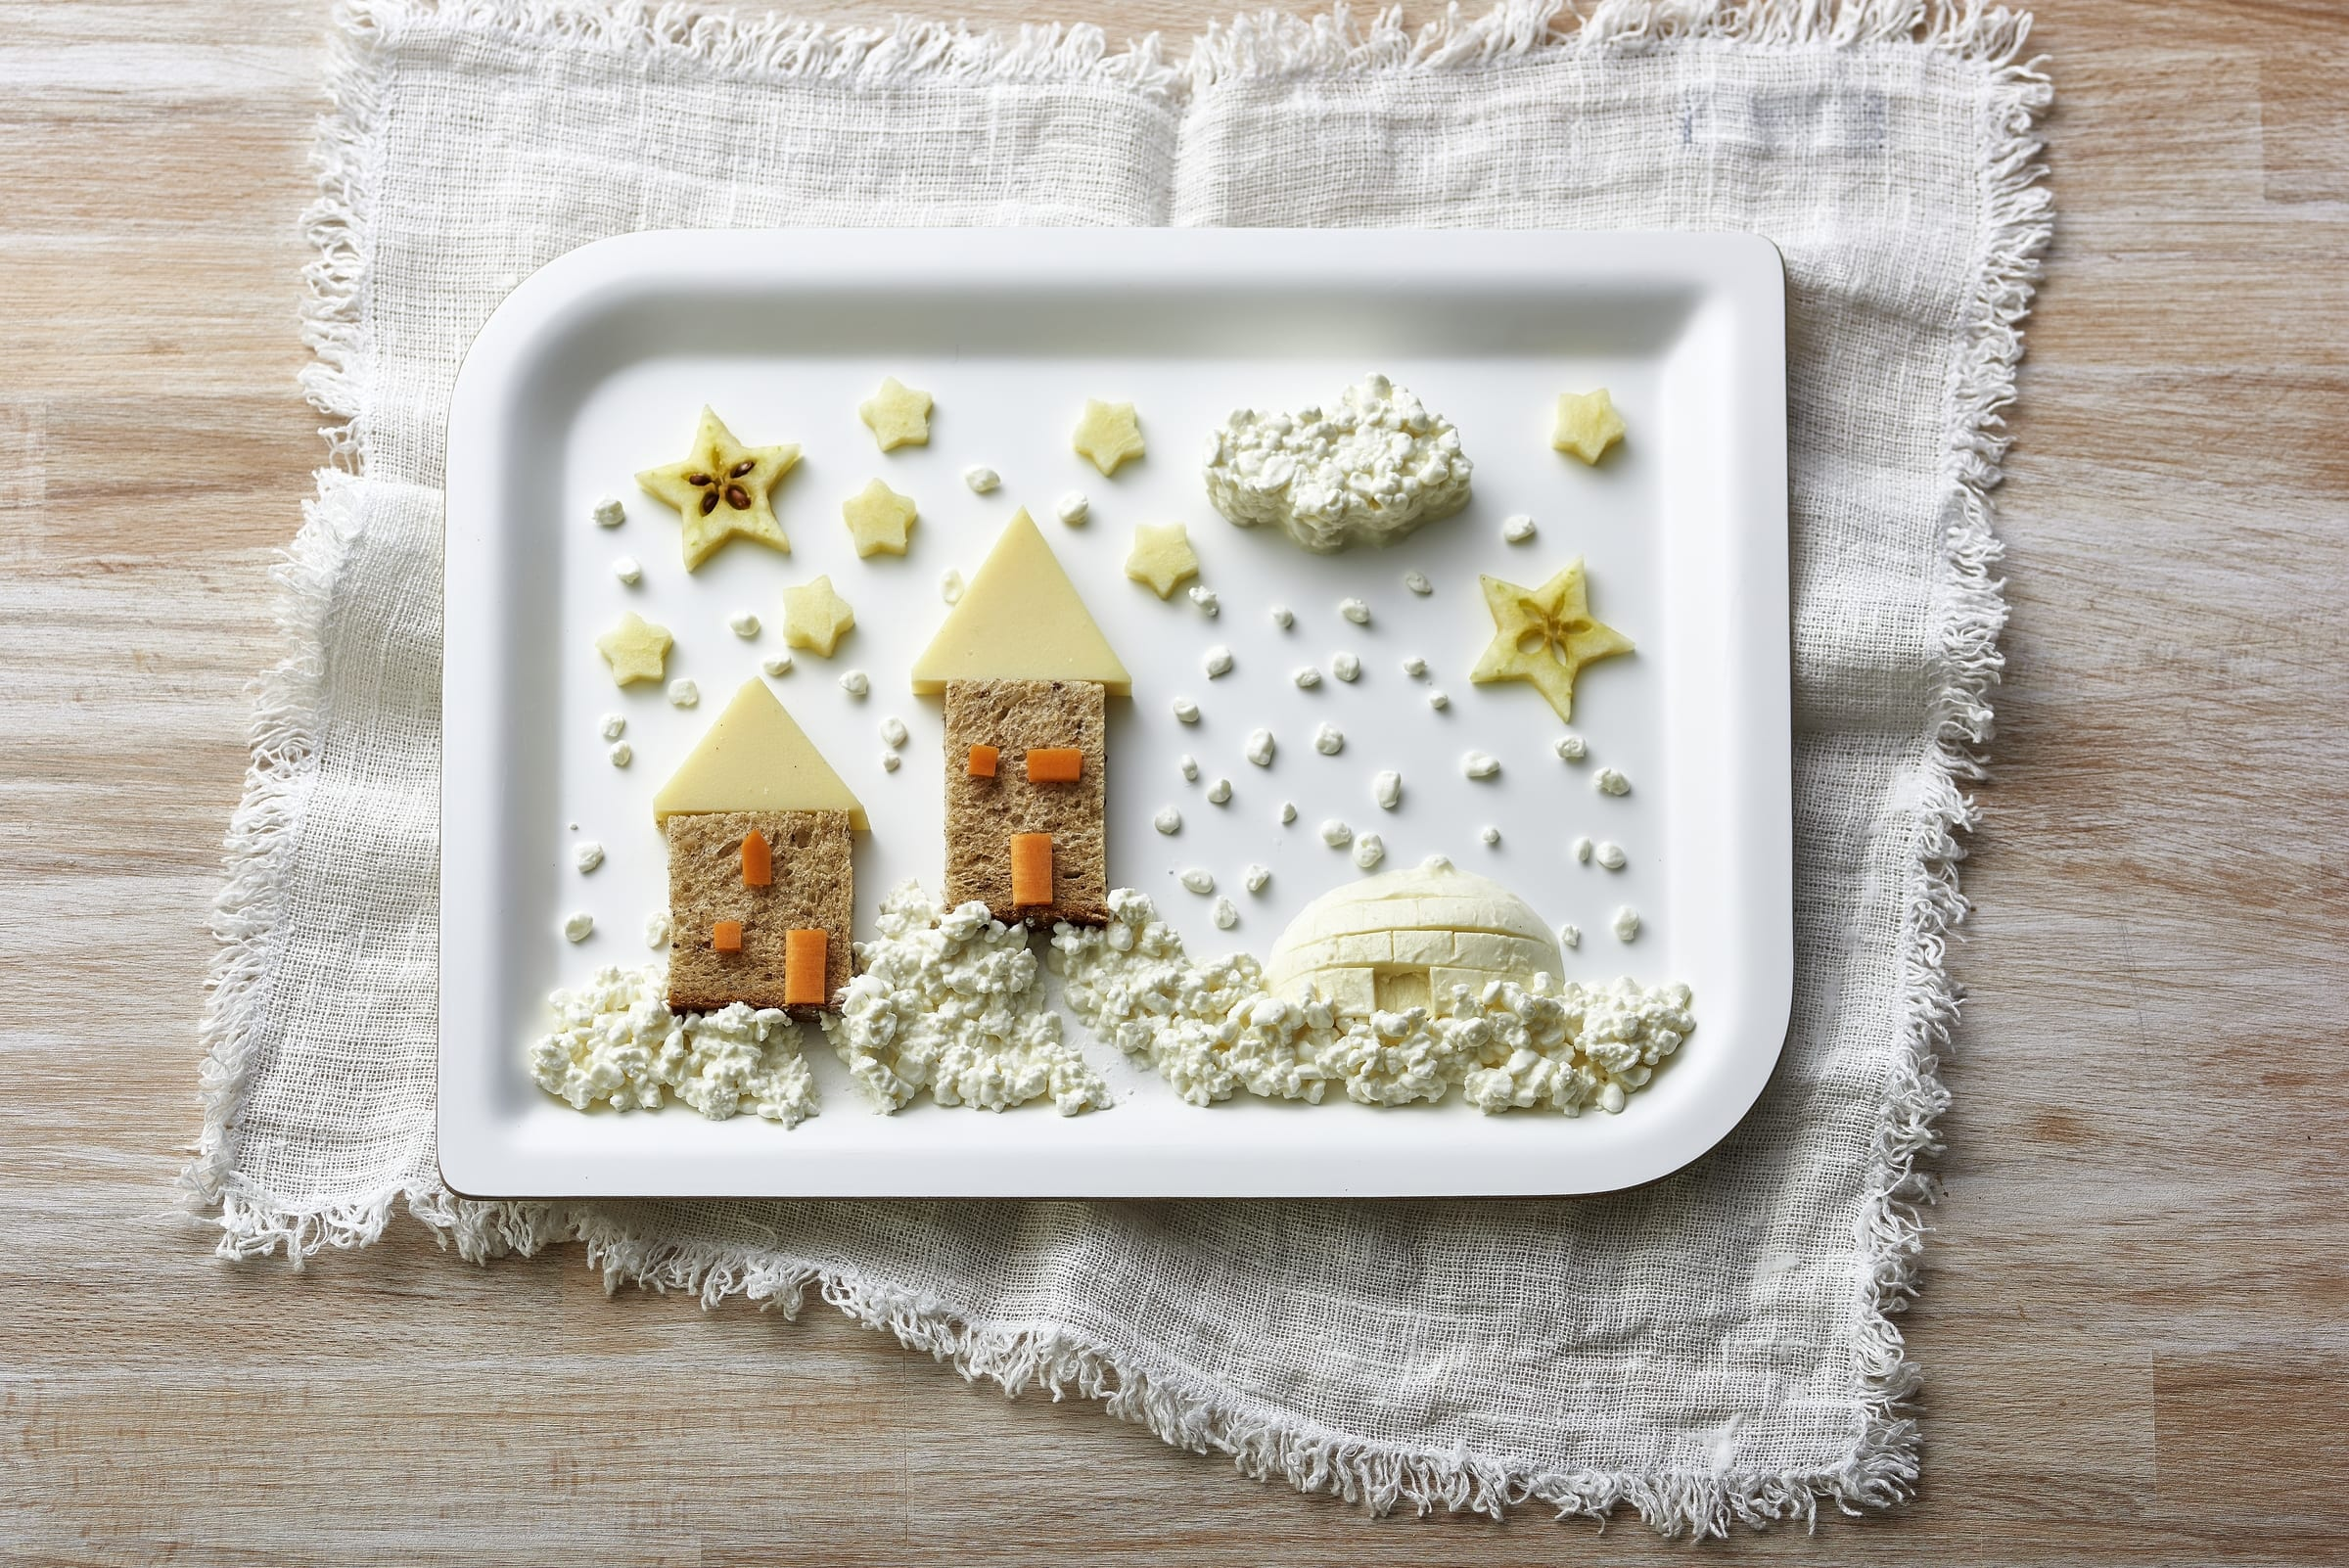 Tableau hivernal comestible